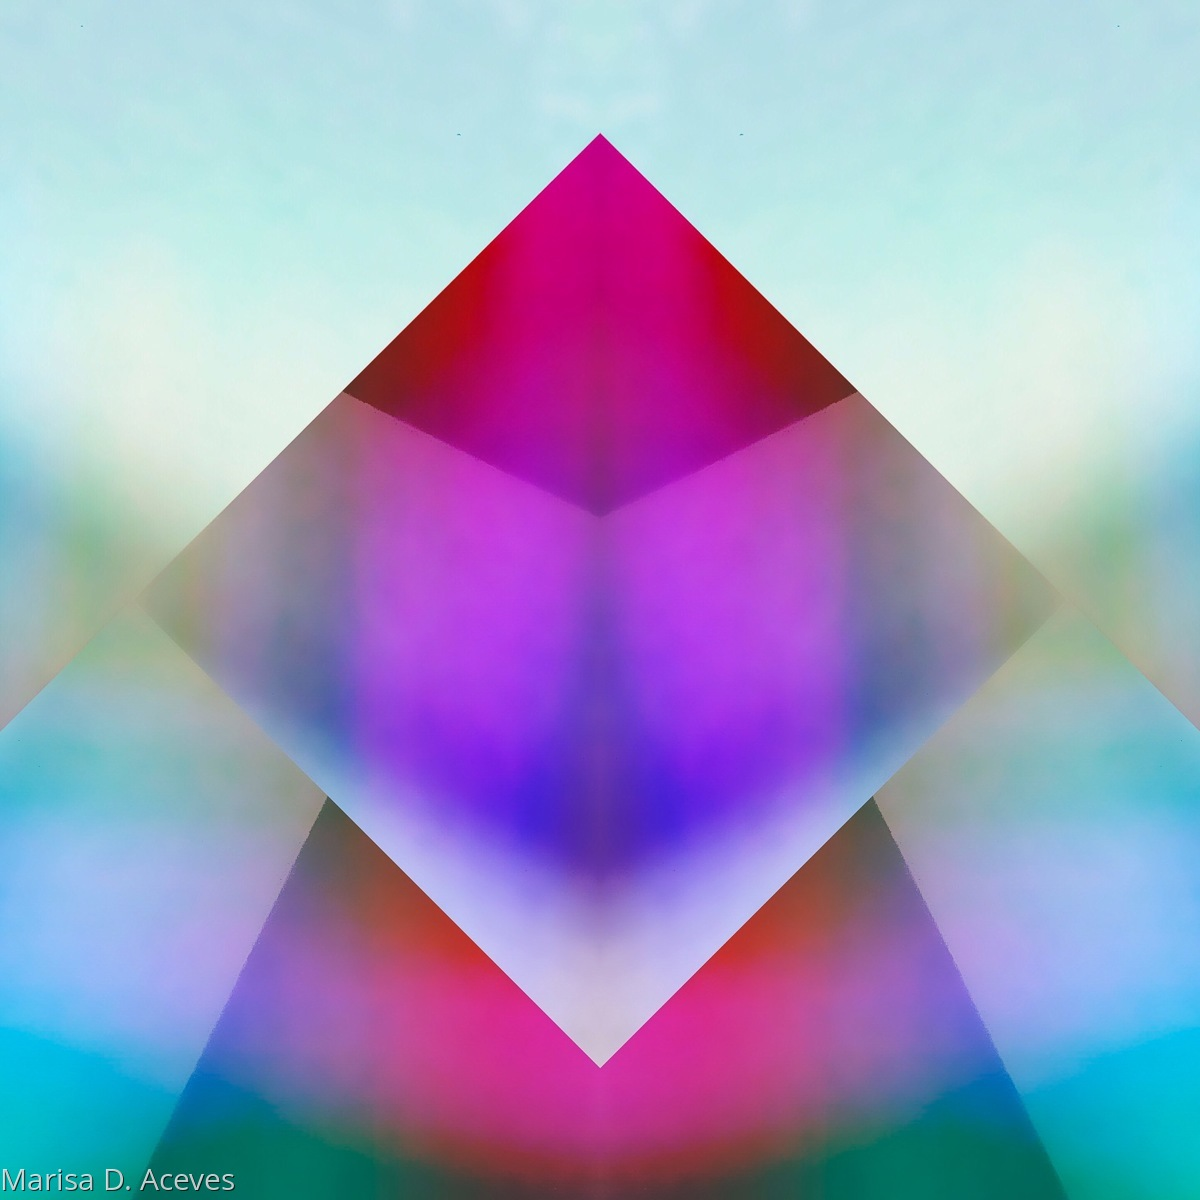 GEOMETRIC COLOR FIELD ABSTRACT ART: DIAMOND PRISM  (large view)